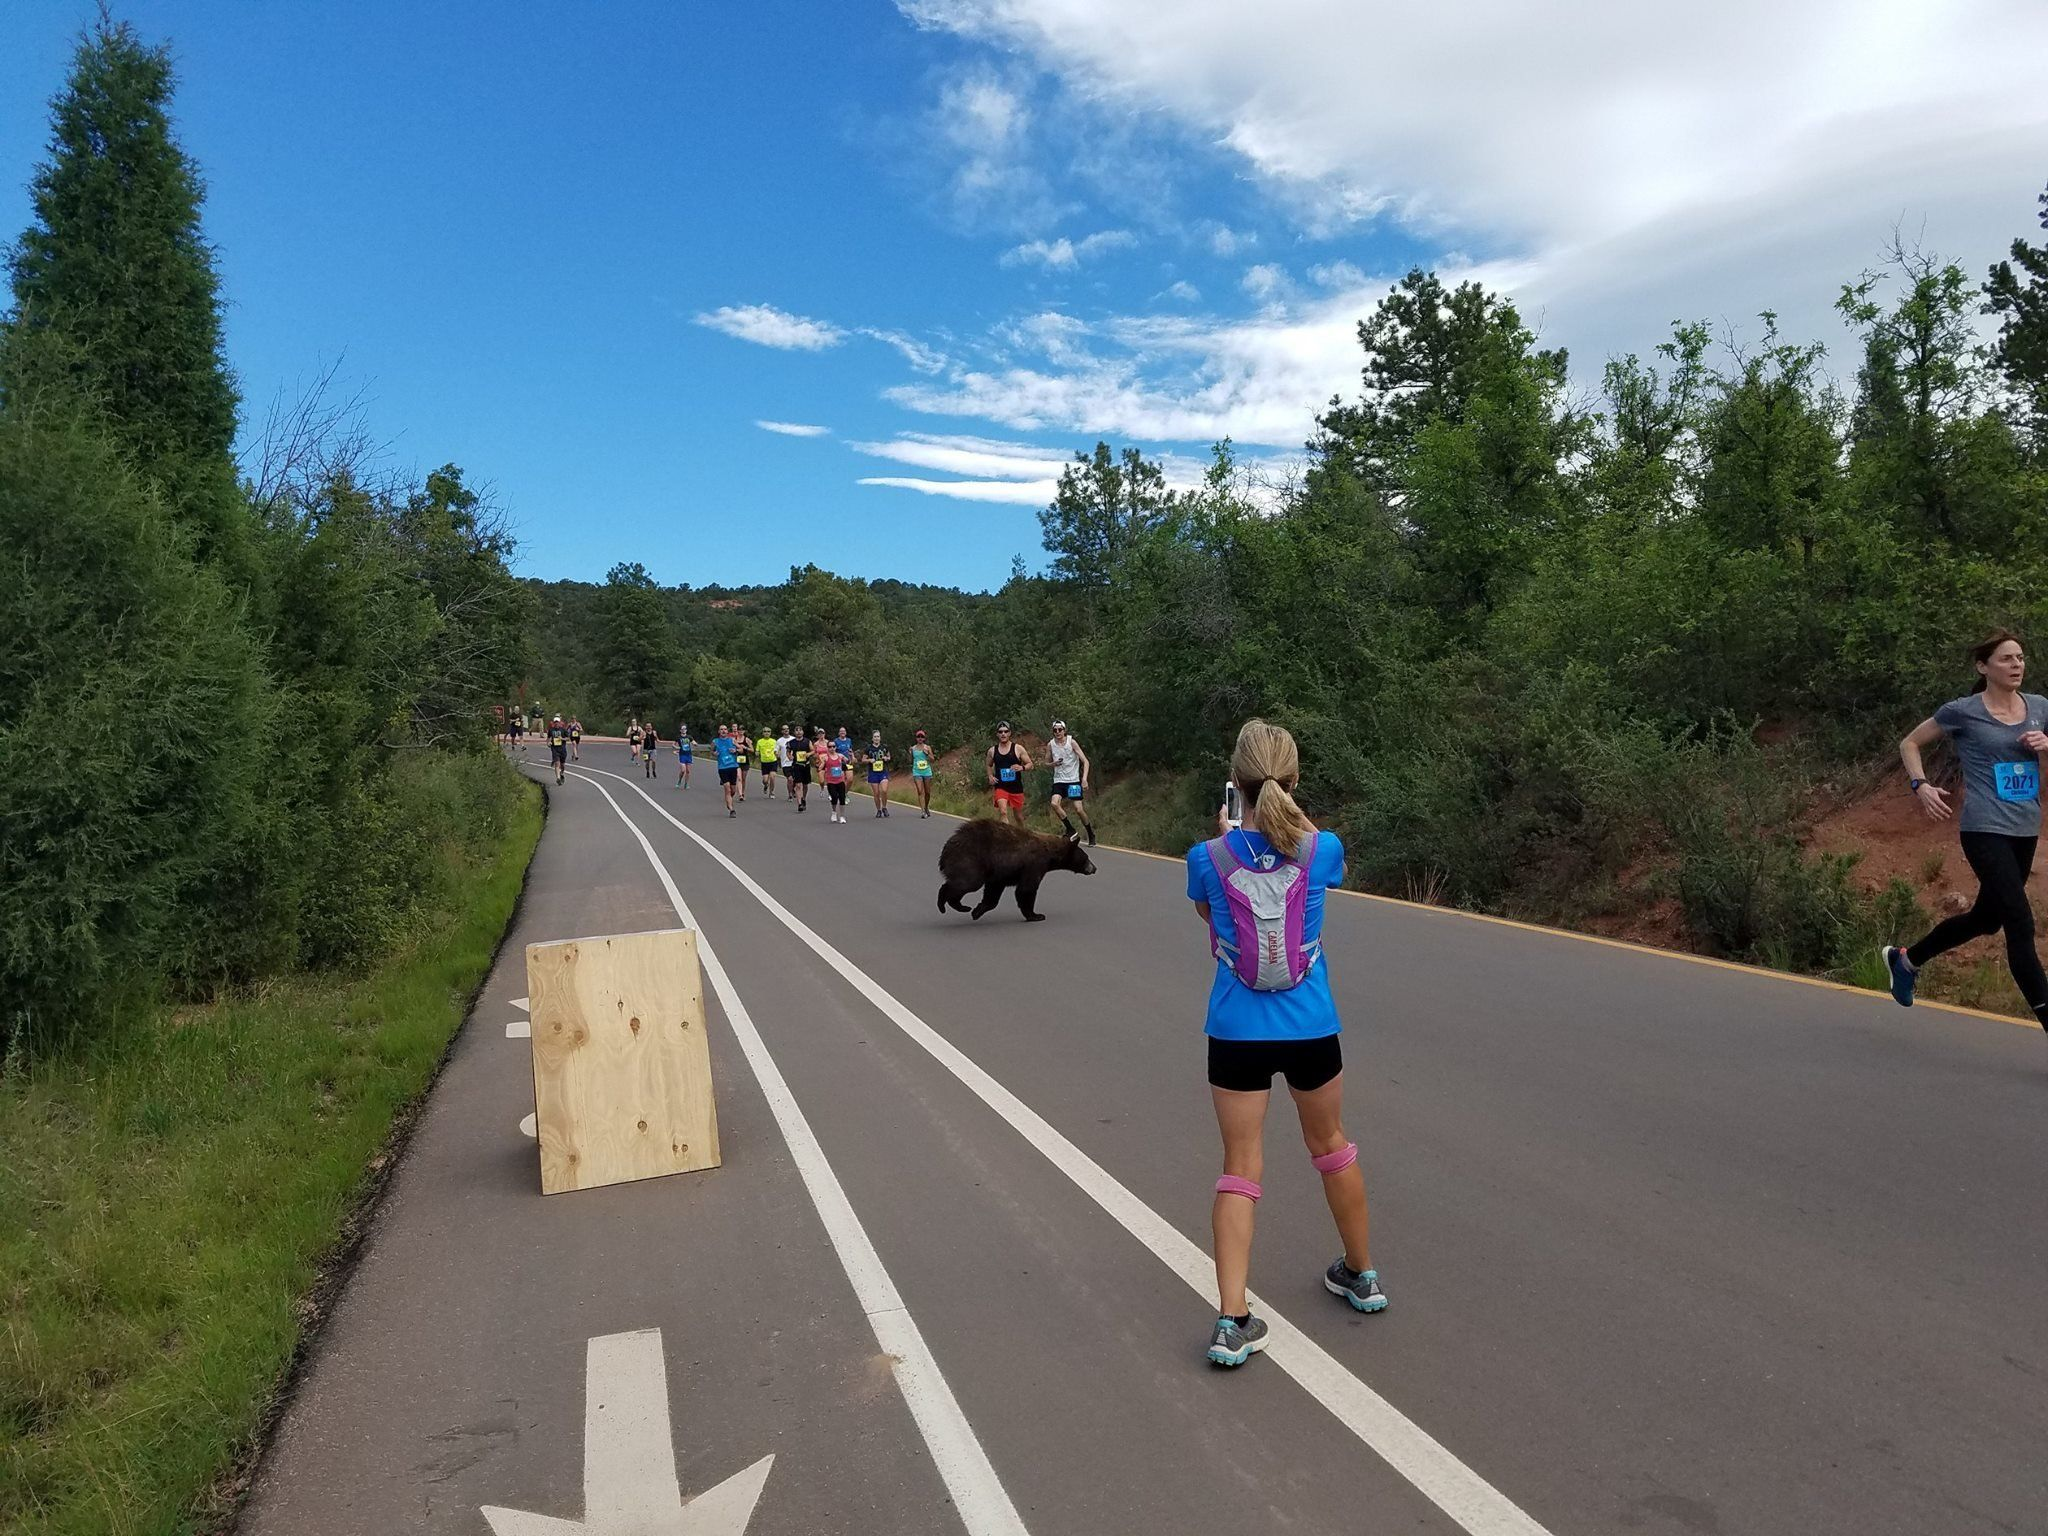 A bear gave runners a startle in Colorado over the weekend